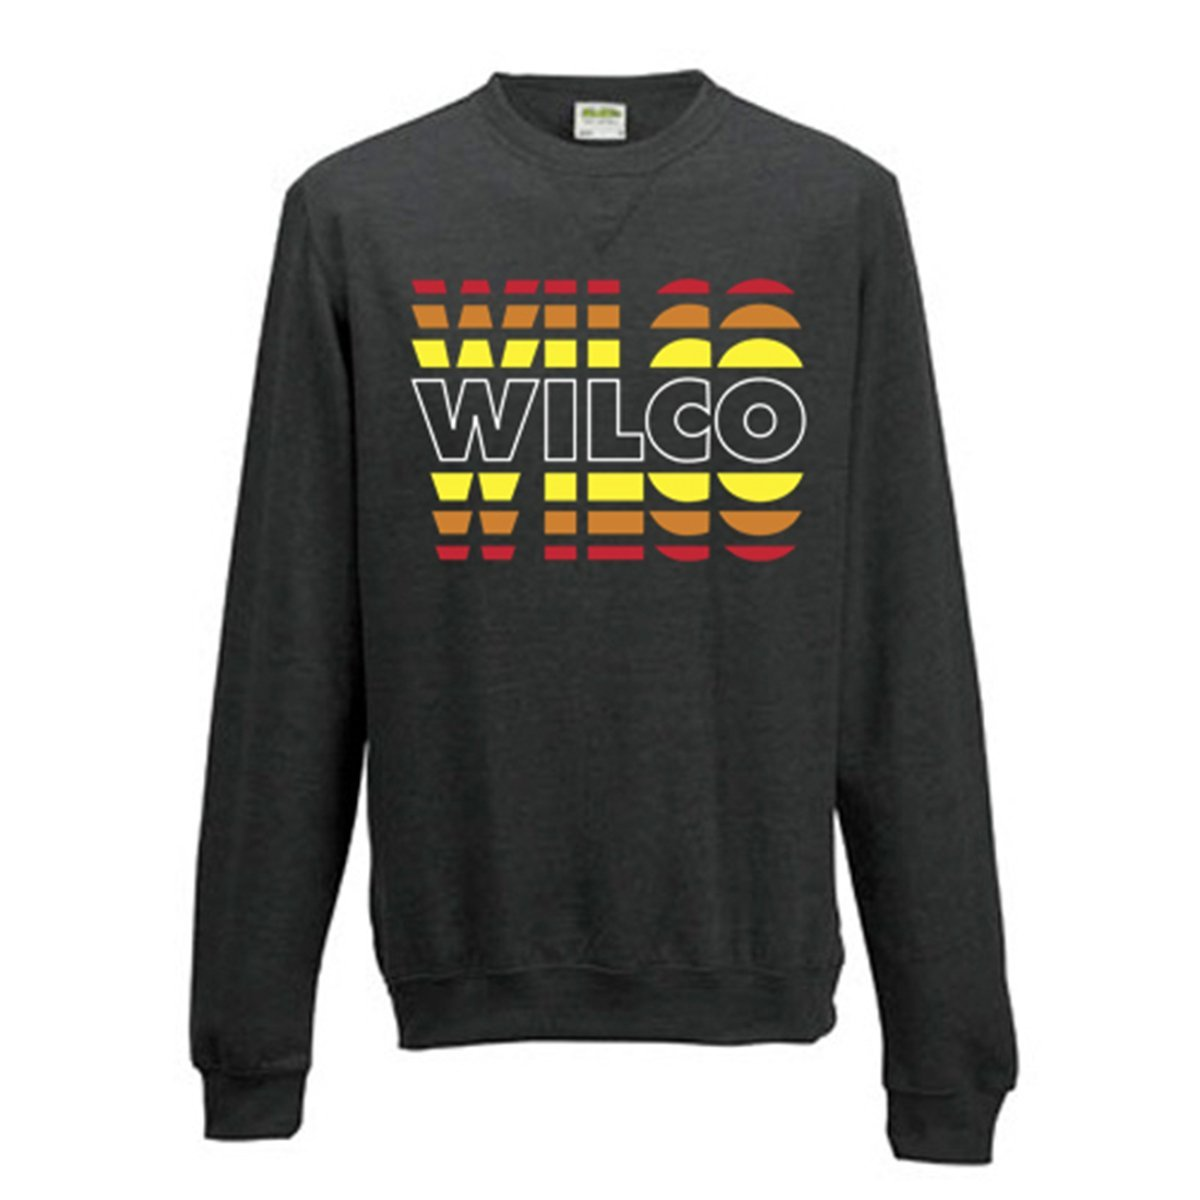 Wilco Fade Sweatshirt Sweatshirt- Bingo Merch Official Merchandise Shop Official